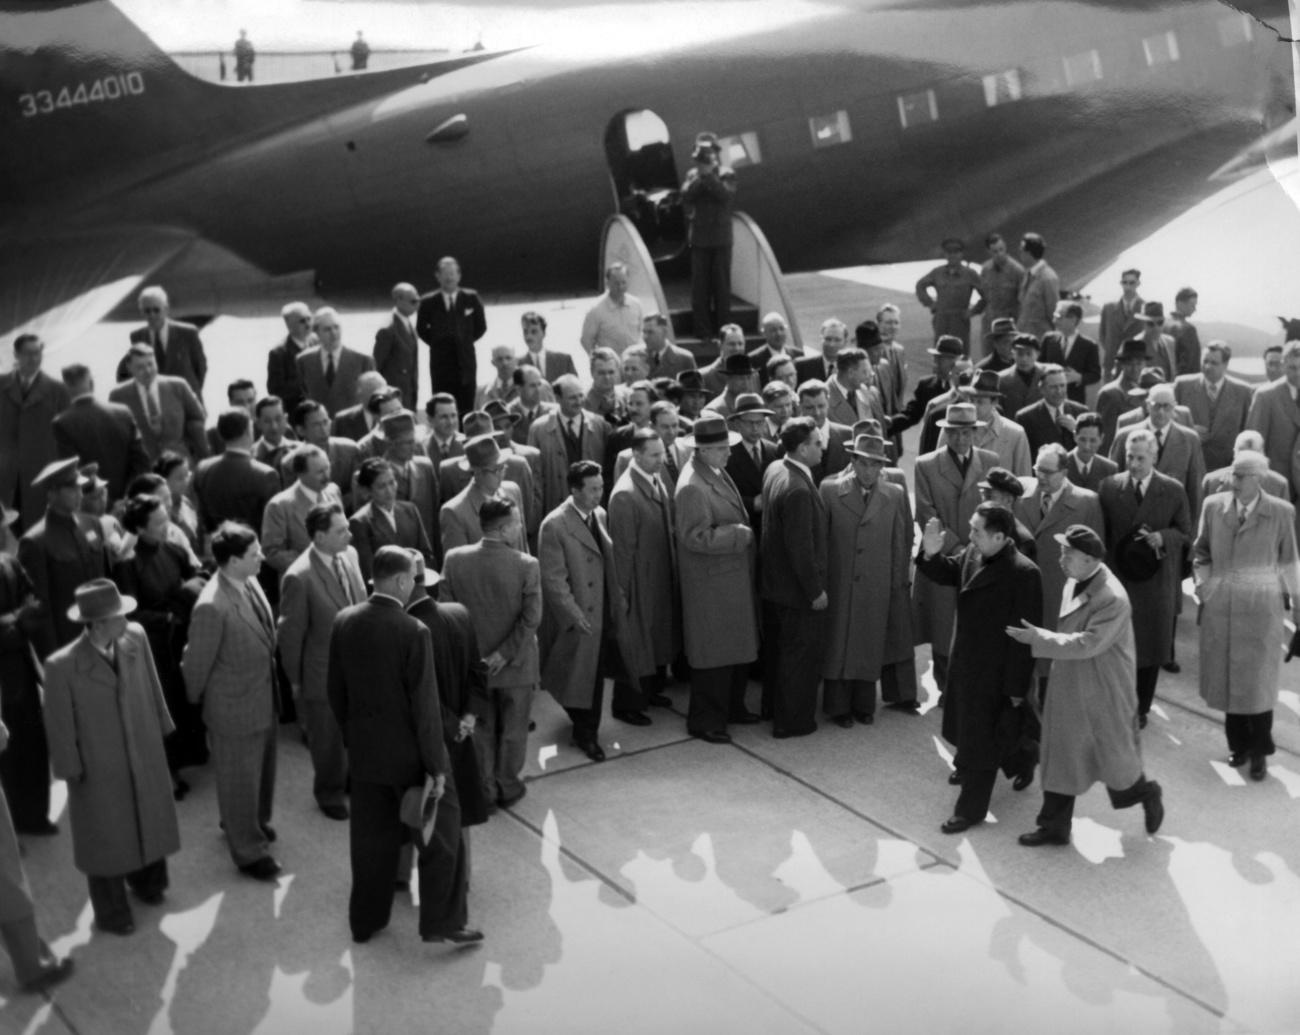 The arrival of Zhou Enlai at Geneva airport, April 24. 1954.